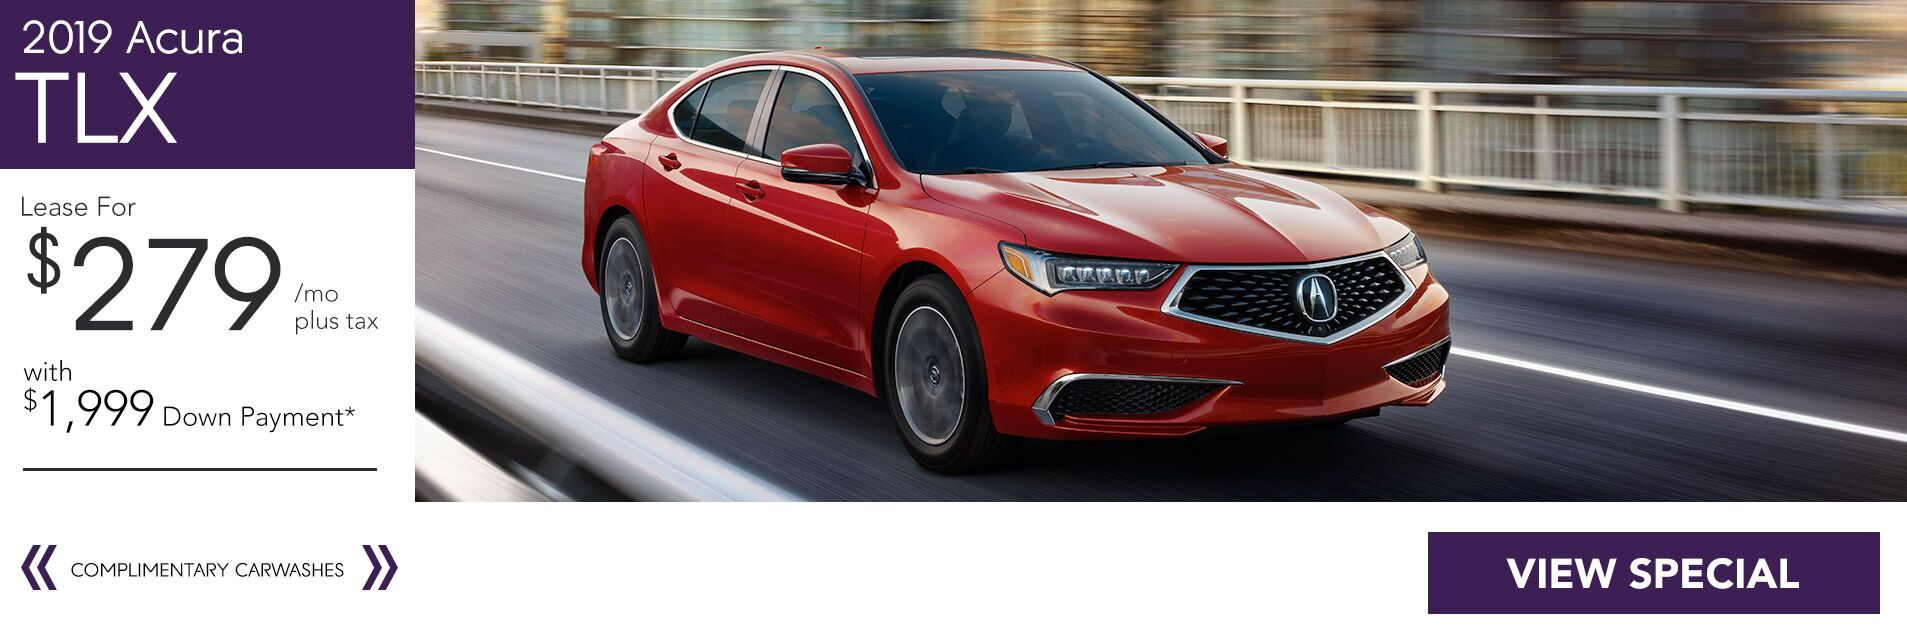 Lease a 2018 Acura TLX Tech for $279/36Mo. with $1,999 Down